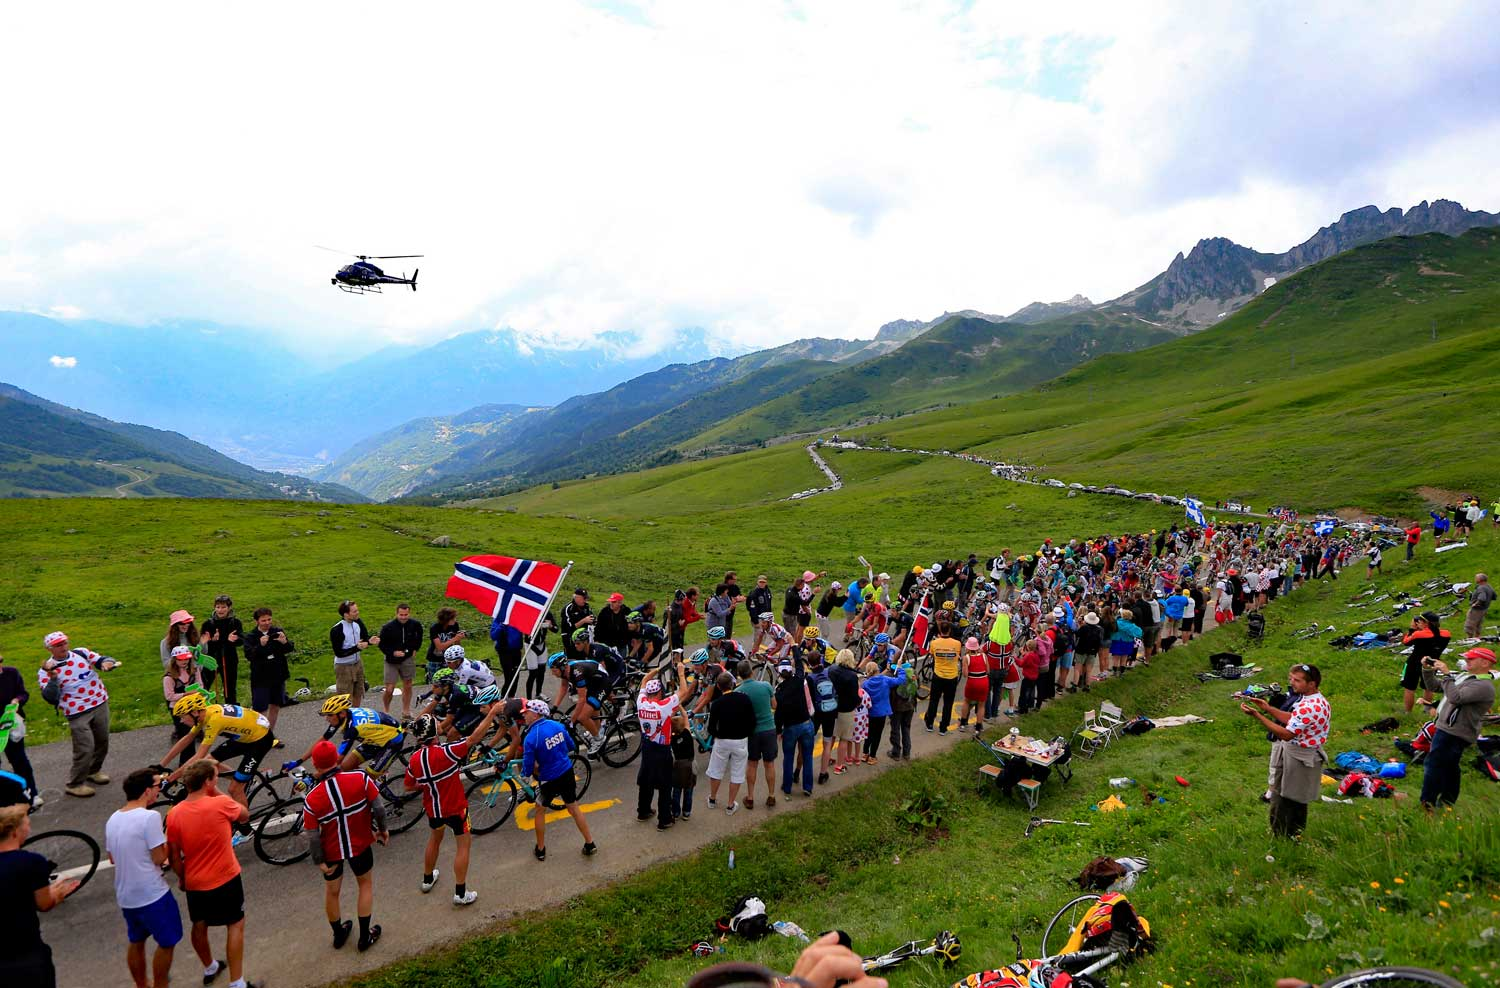 2019 TOUR DE FRANCE - EXPERIENCE THE FINAL WEEK IN THE FRENCH ALPS!